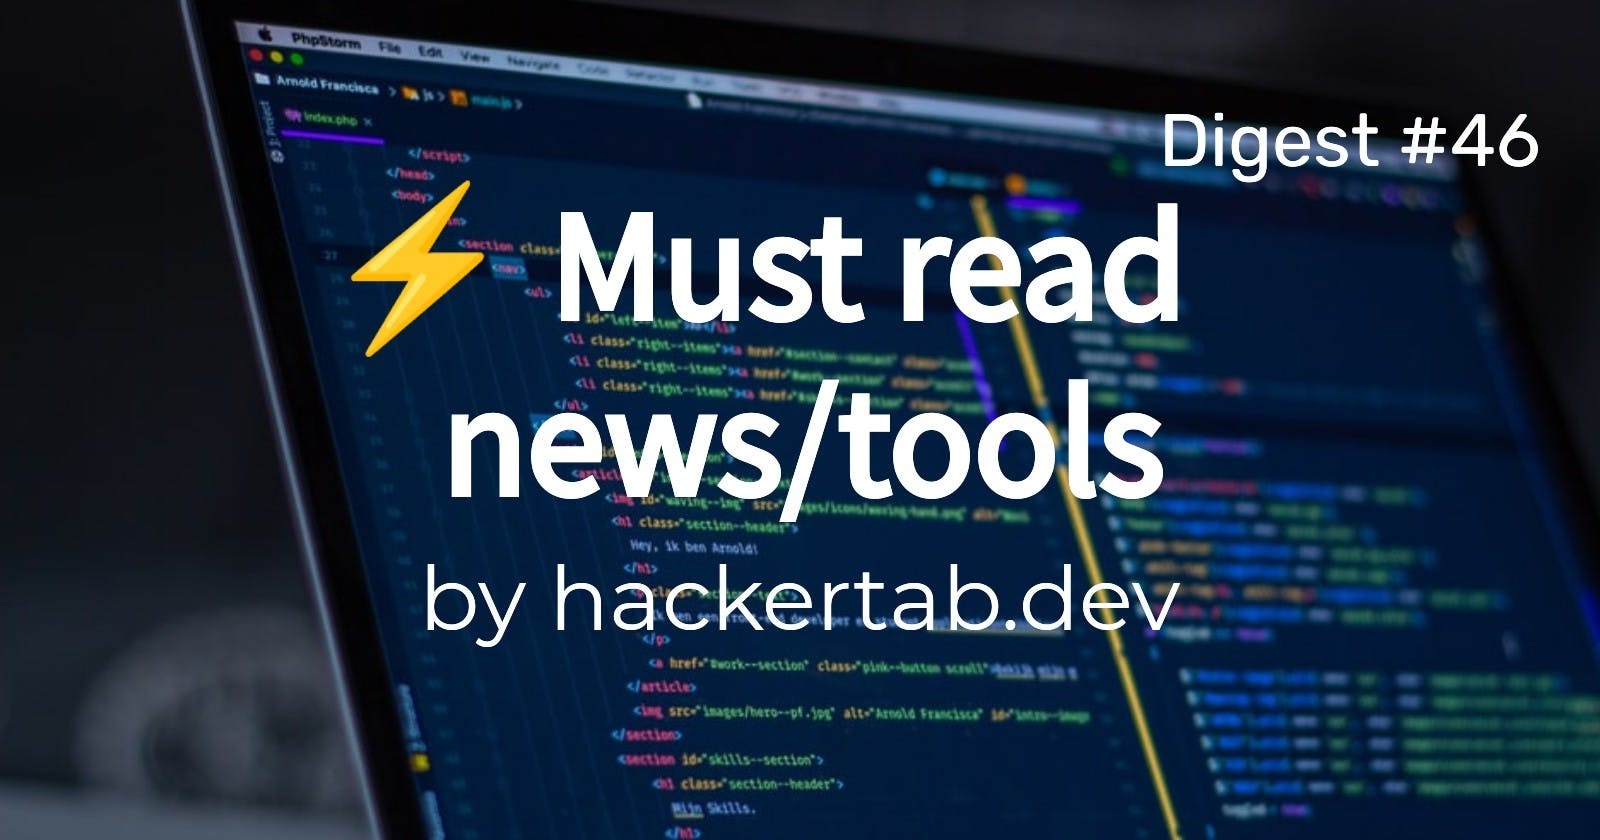 🔥 Trending News, Repos and Products of the day - Digest #46